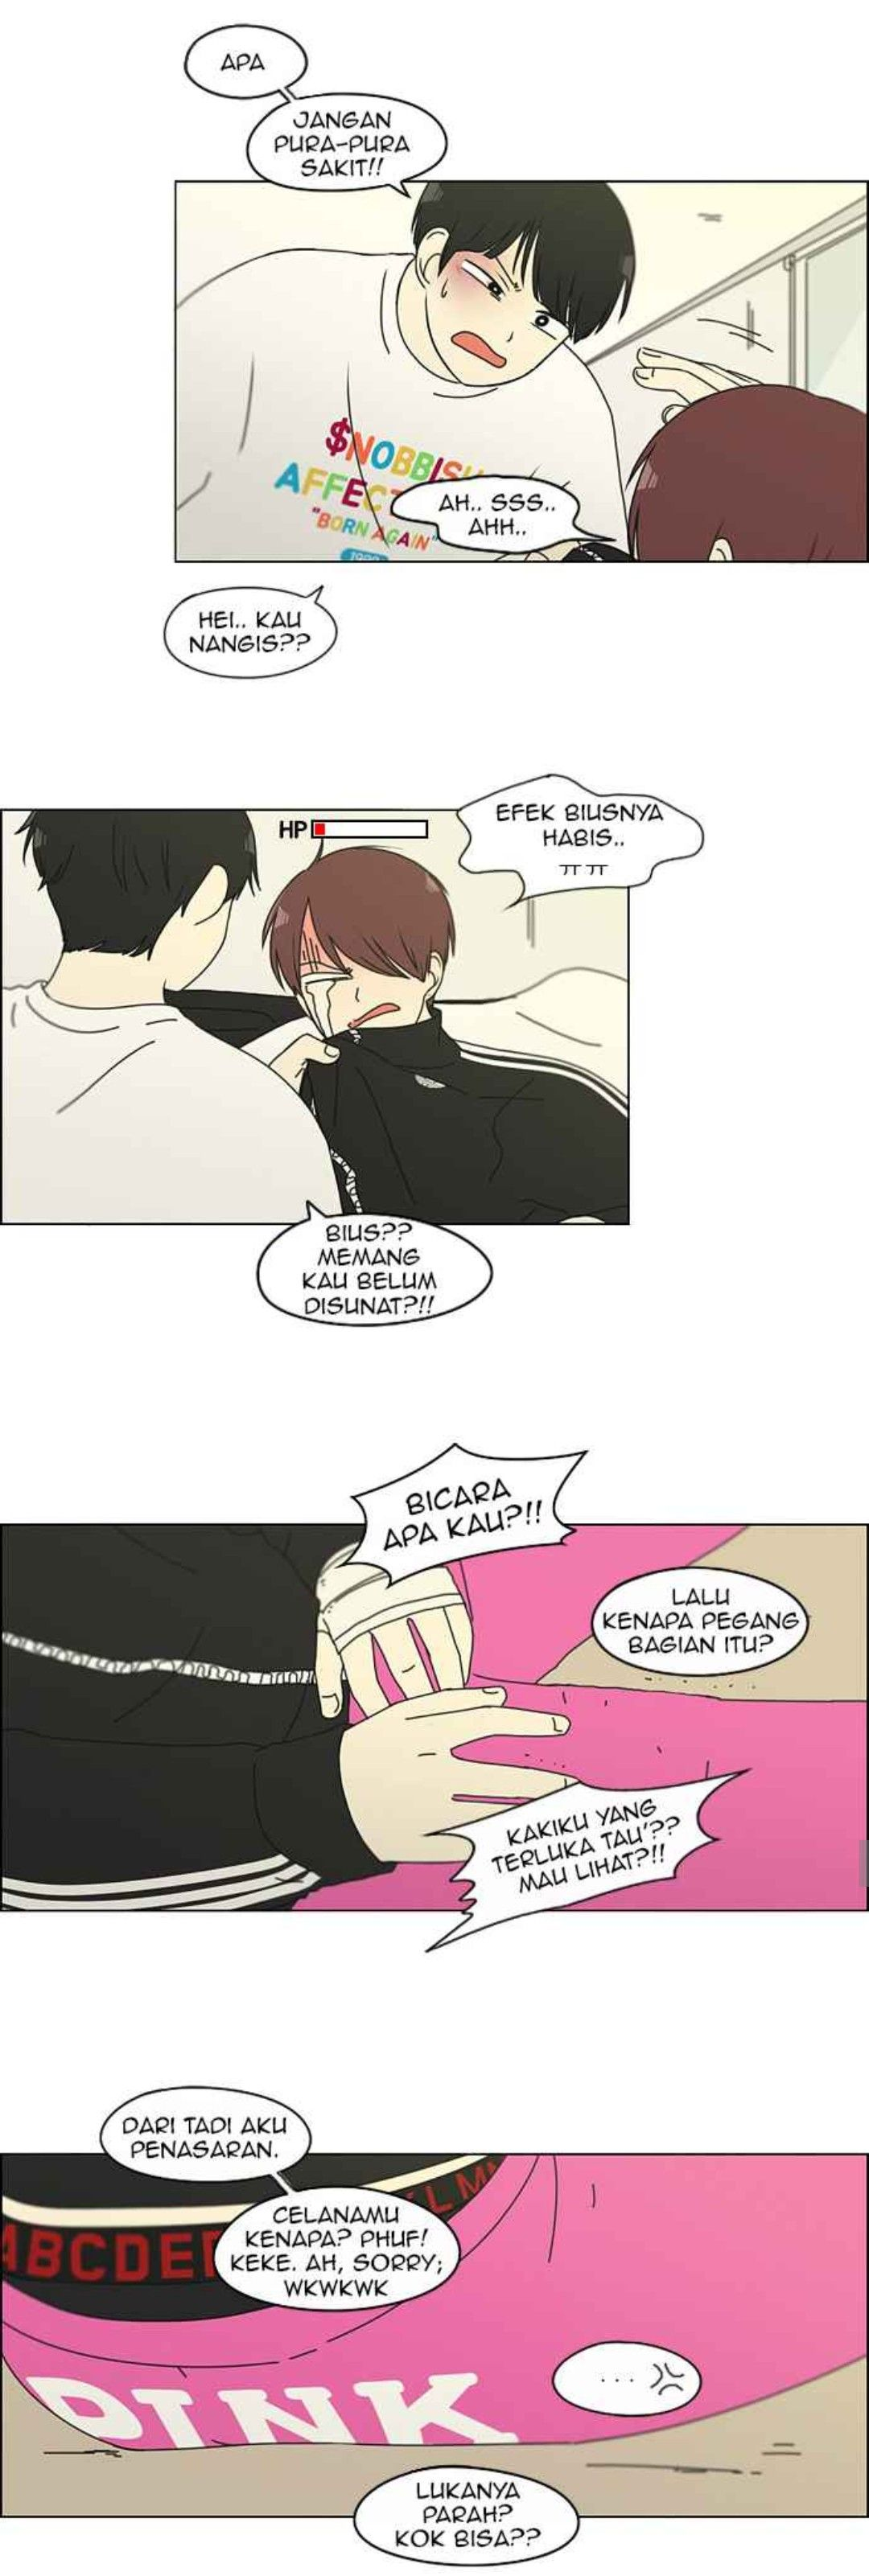 Love Revolution di 2020 Webtoon, Komik, Romantis